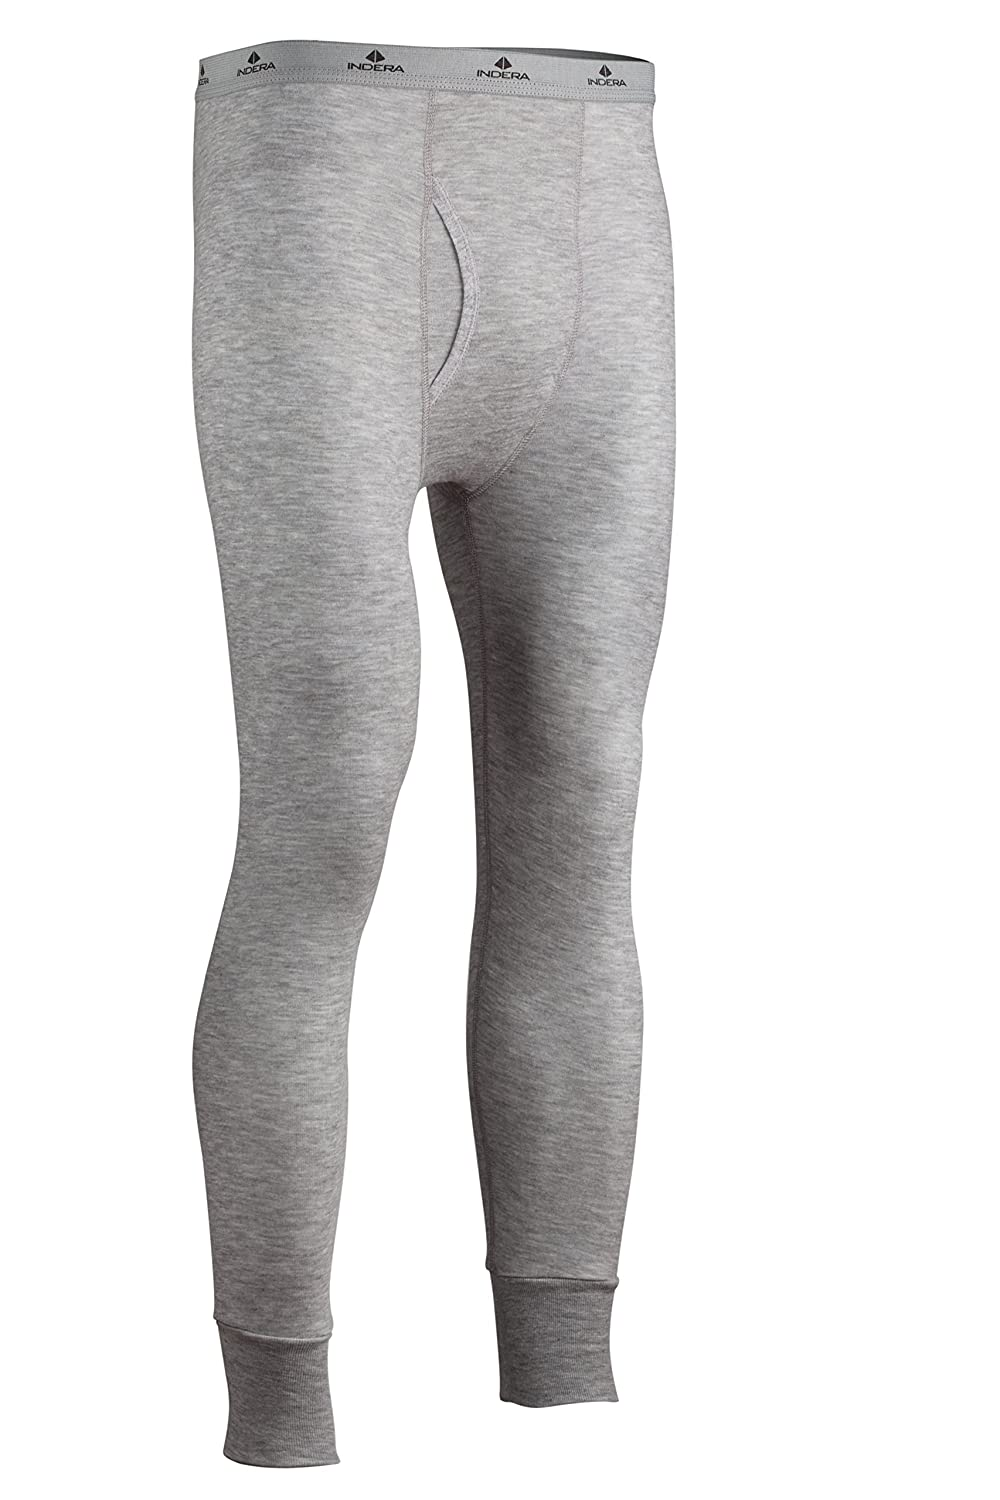 Indera Mens Dual Face Raschel Knit Performance Thermal Underwear Pant with Silvadur ColdPruf Baselayer